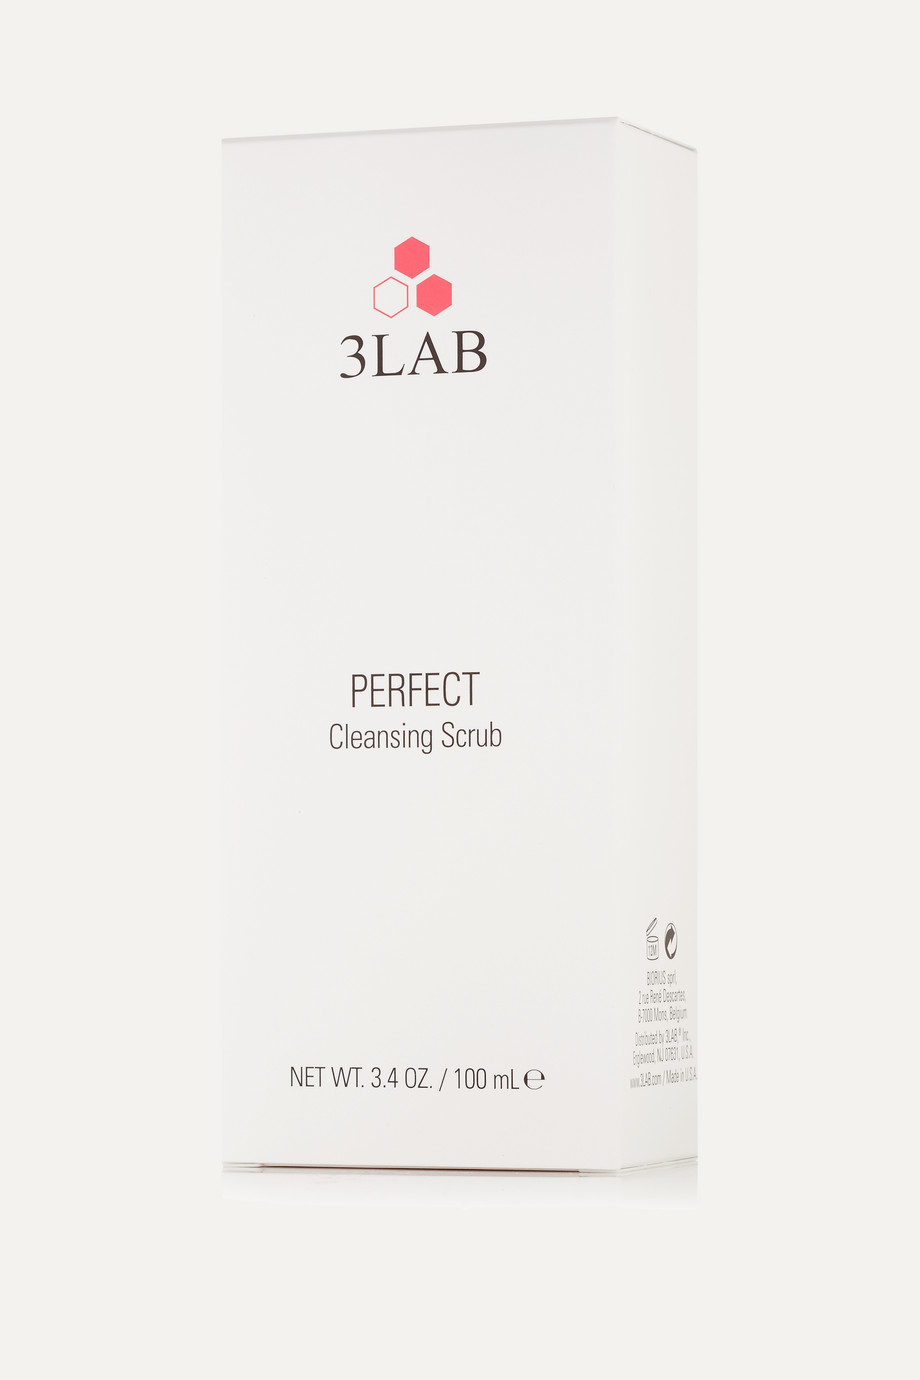 3LAB Perfect Cleansing Scrub, 100ml